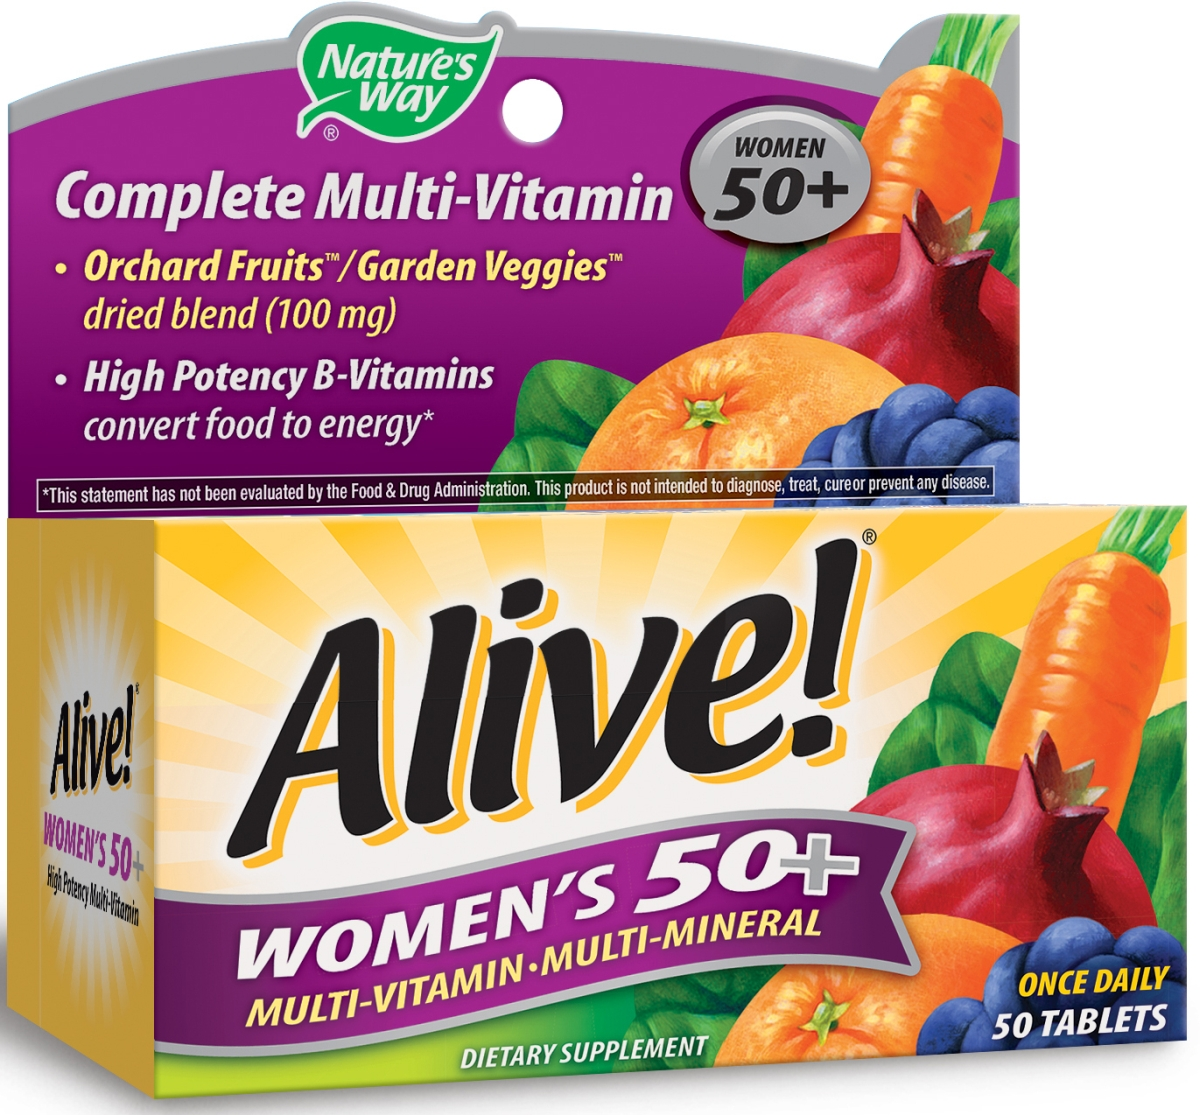 Alive! Women's 50+ Multivitamin-Multimineral 50 tabs by Nature's Way